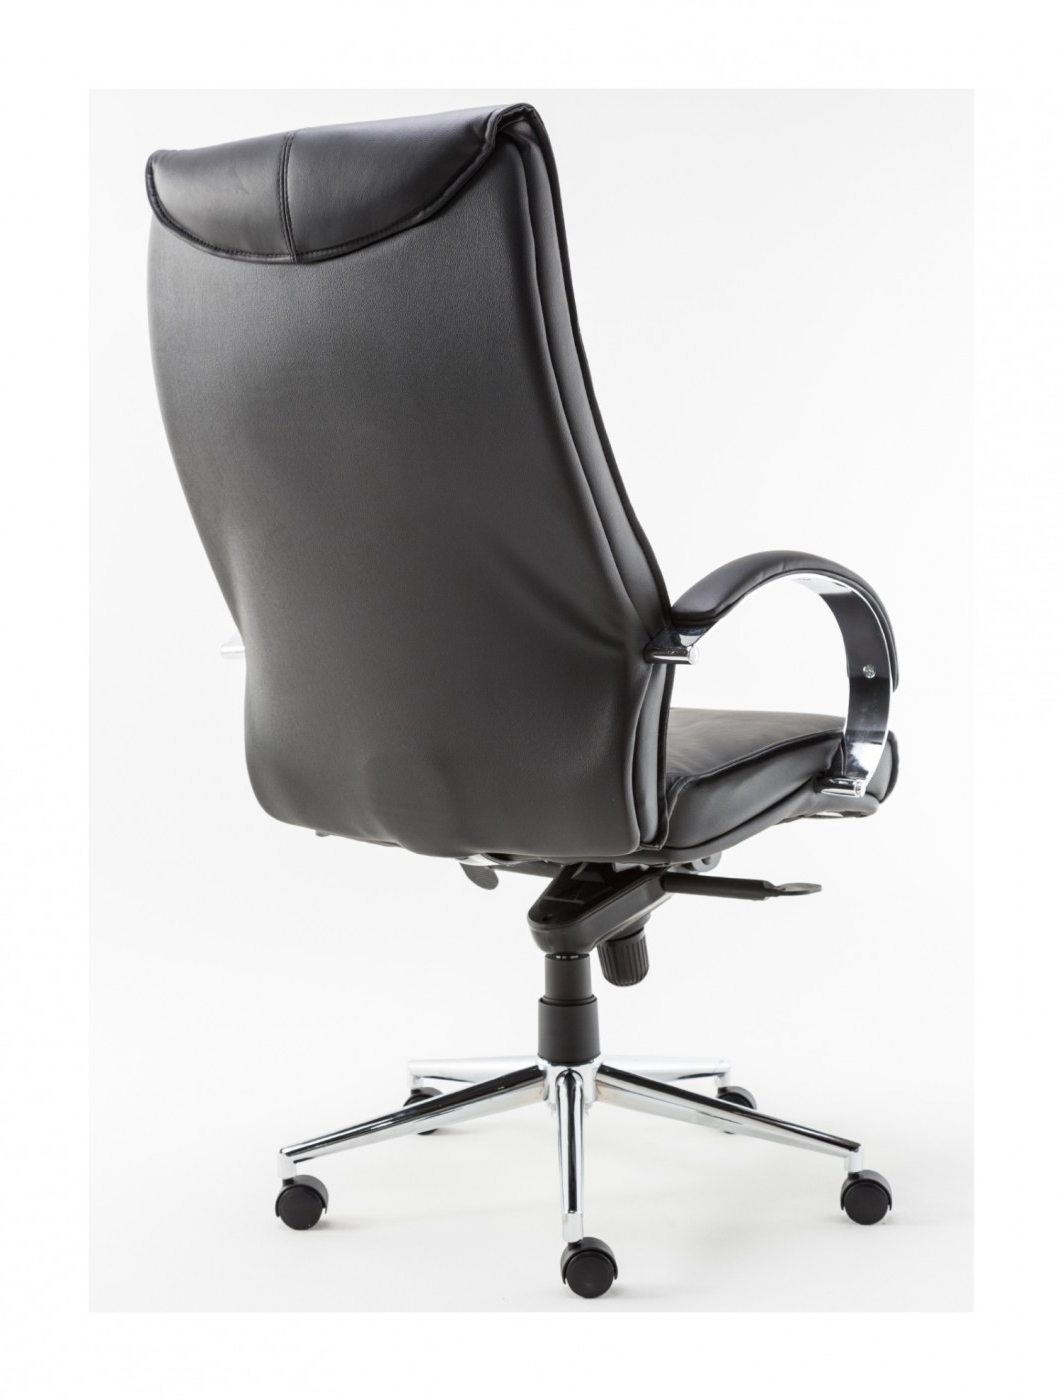 121 Office Throughout Verona Cream Executive Leather Office Chairs (Gallery 11 of 20)